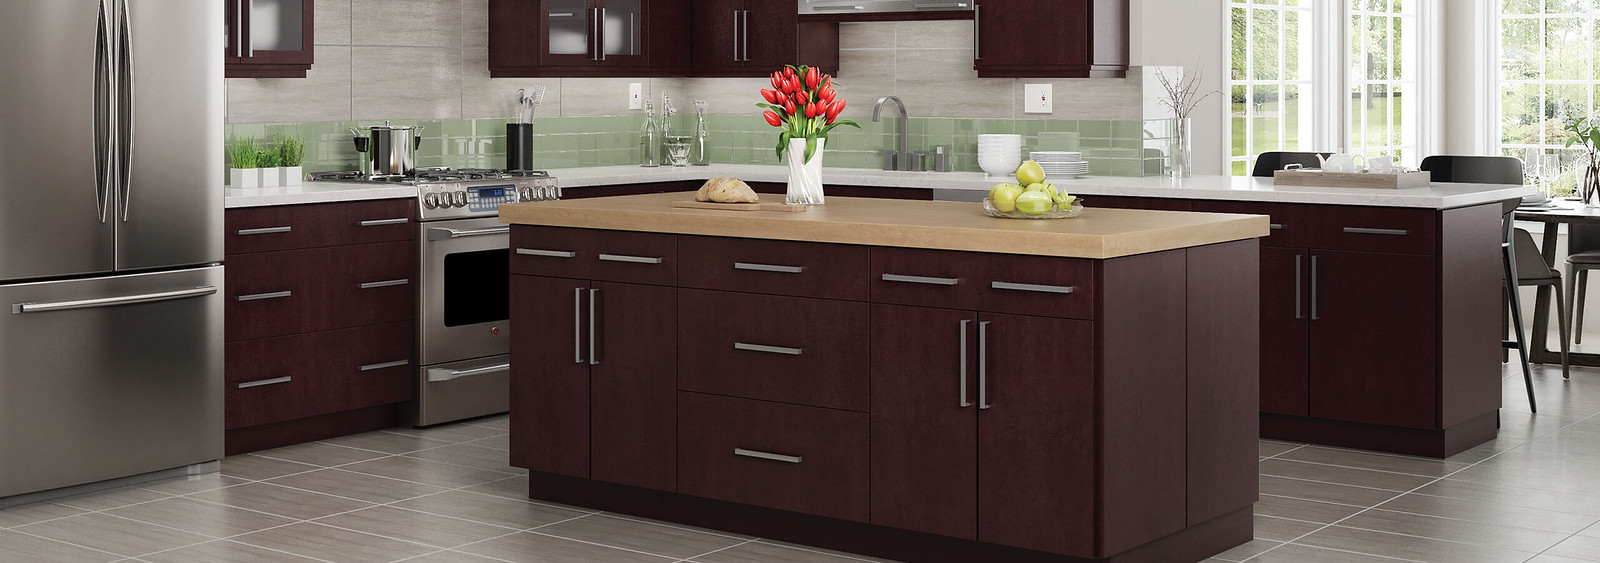 denver kitchen cabinets access kitchen cabinets wolf home products 14623